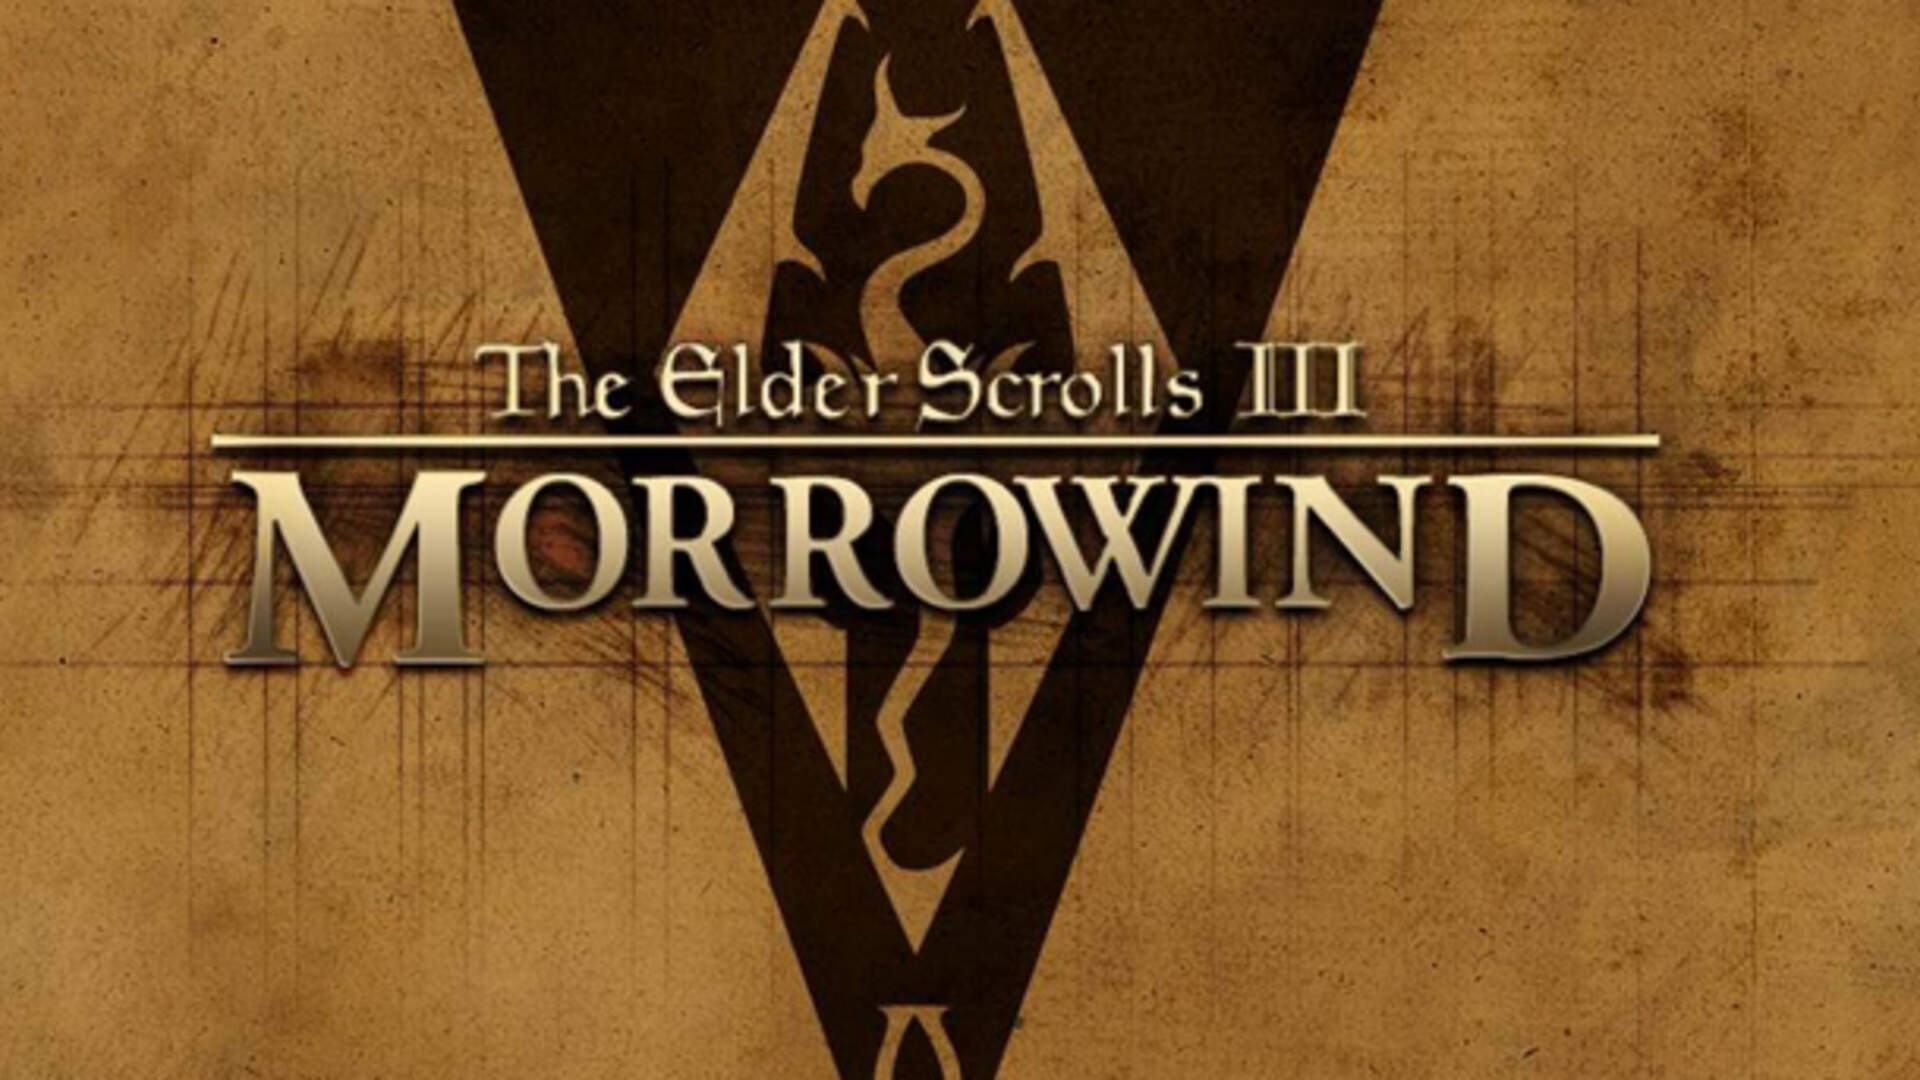 The Top 25 RPGs of All Time #11: The Elder Scrolls 3: Morrowind